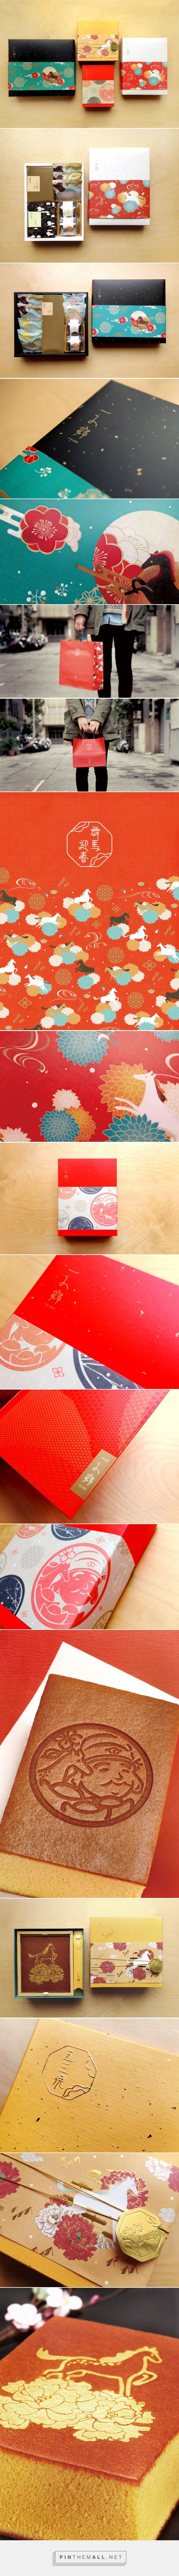 MURA︱東西設計 #packaging Red Dot Award winner 2015